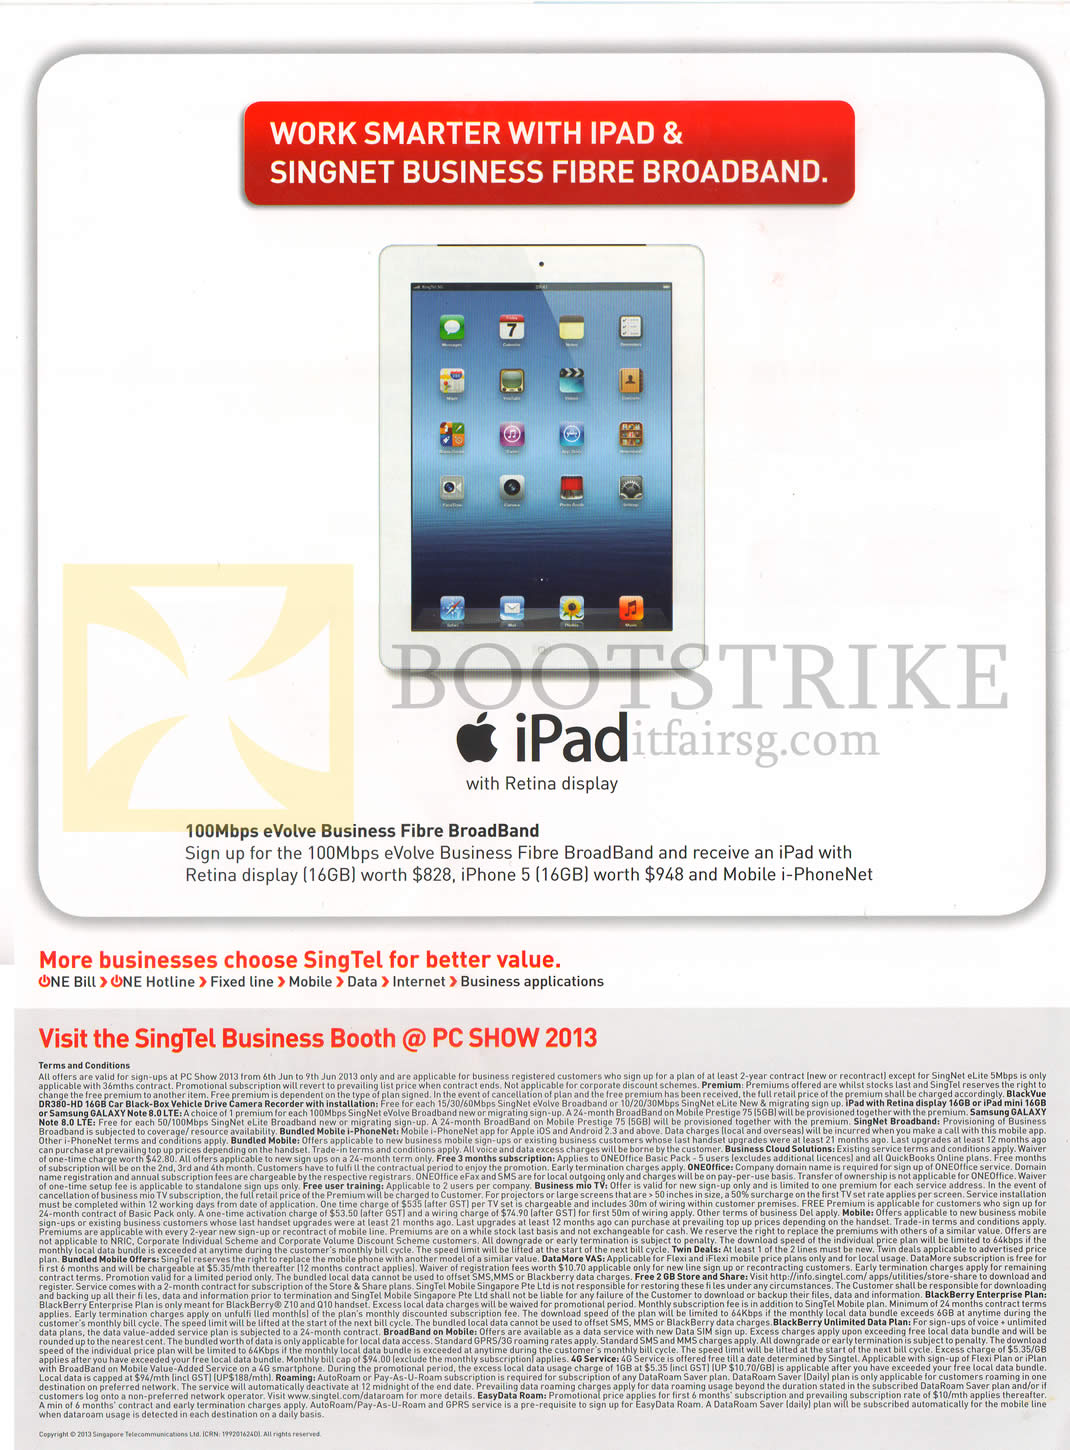 PC SHOW 2013 price list image brochure of Singtel Business Apple IPad 4, 100Mbps EVolve Fibre Broadband, Terms N Conditions